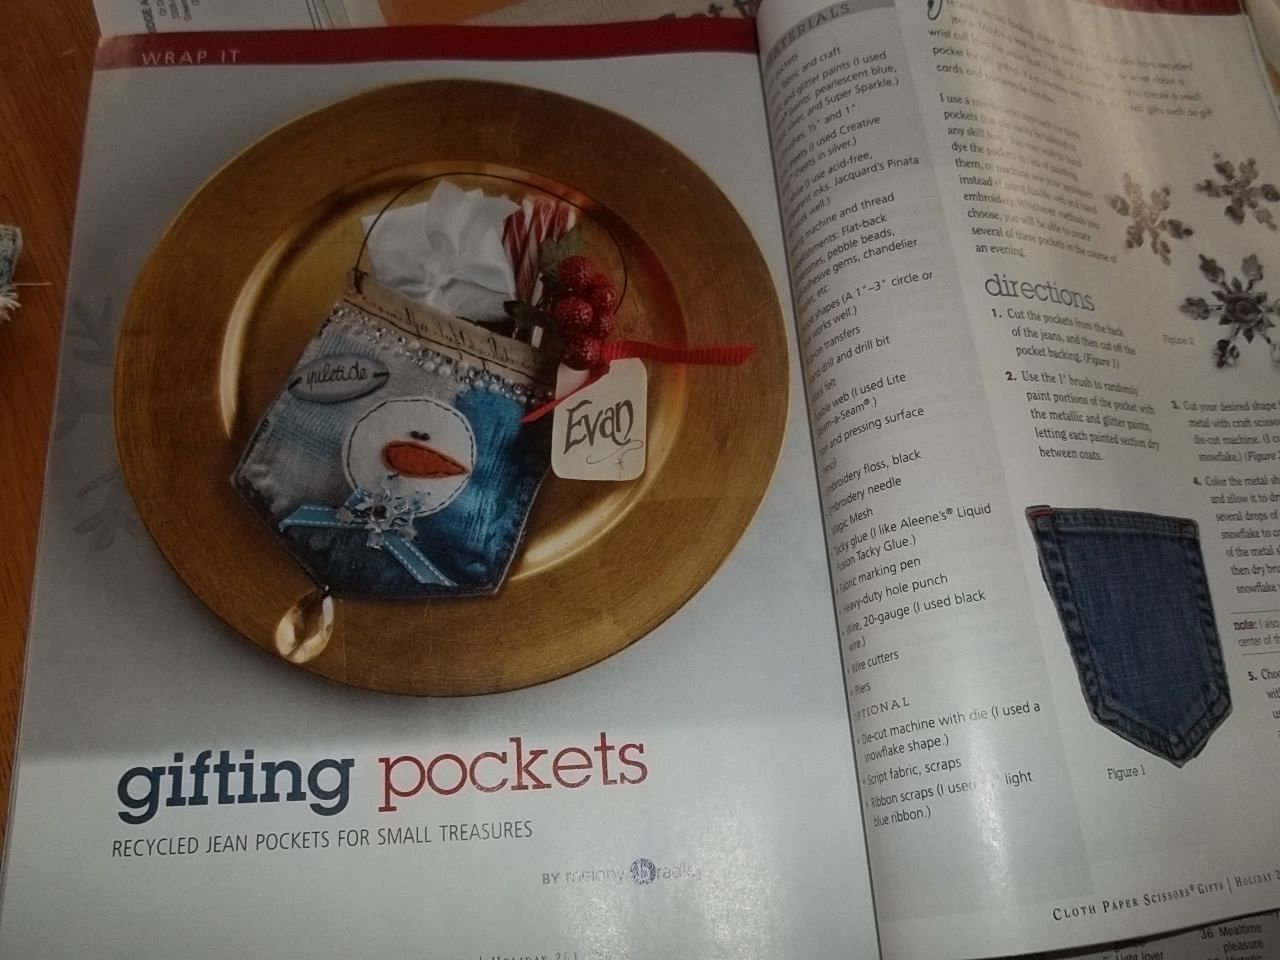 The Missing Piece: Gifting Pockets